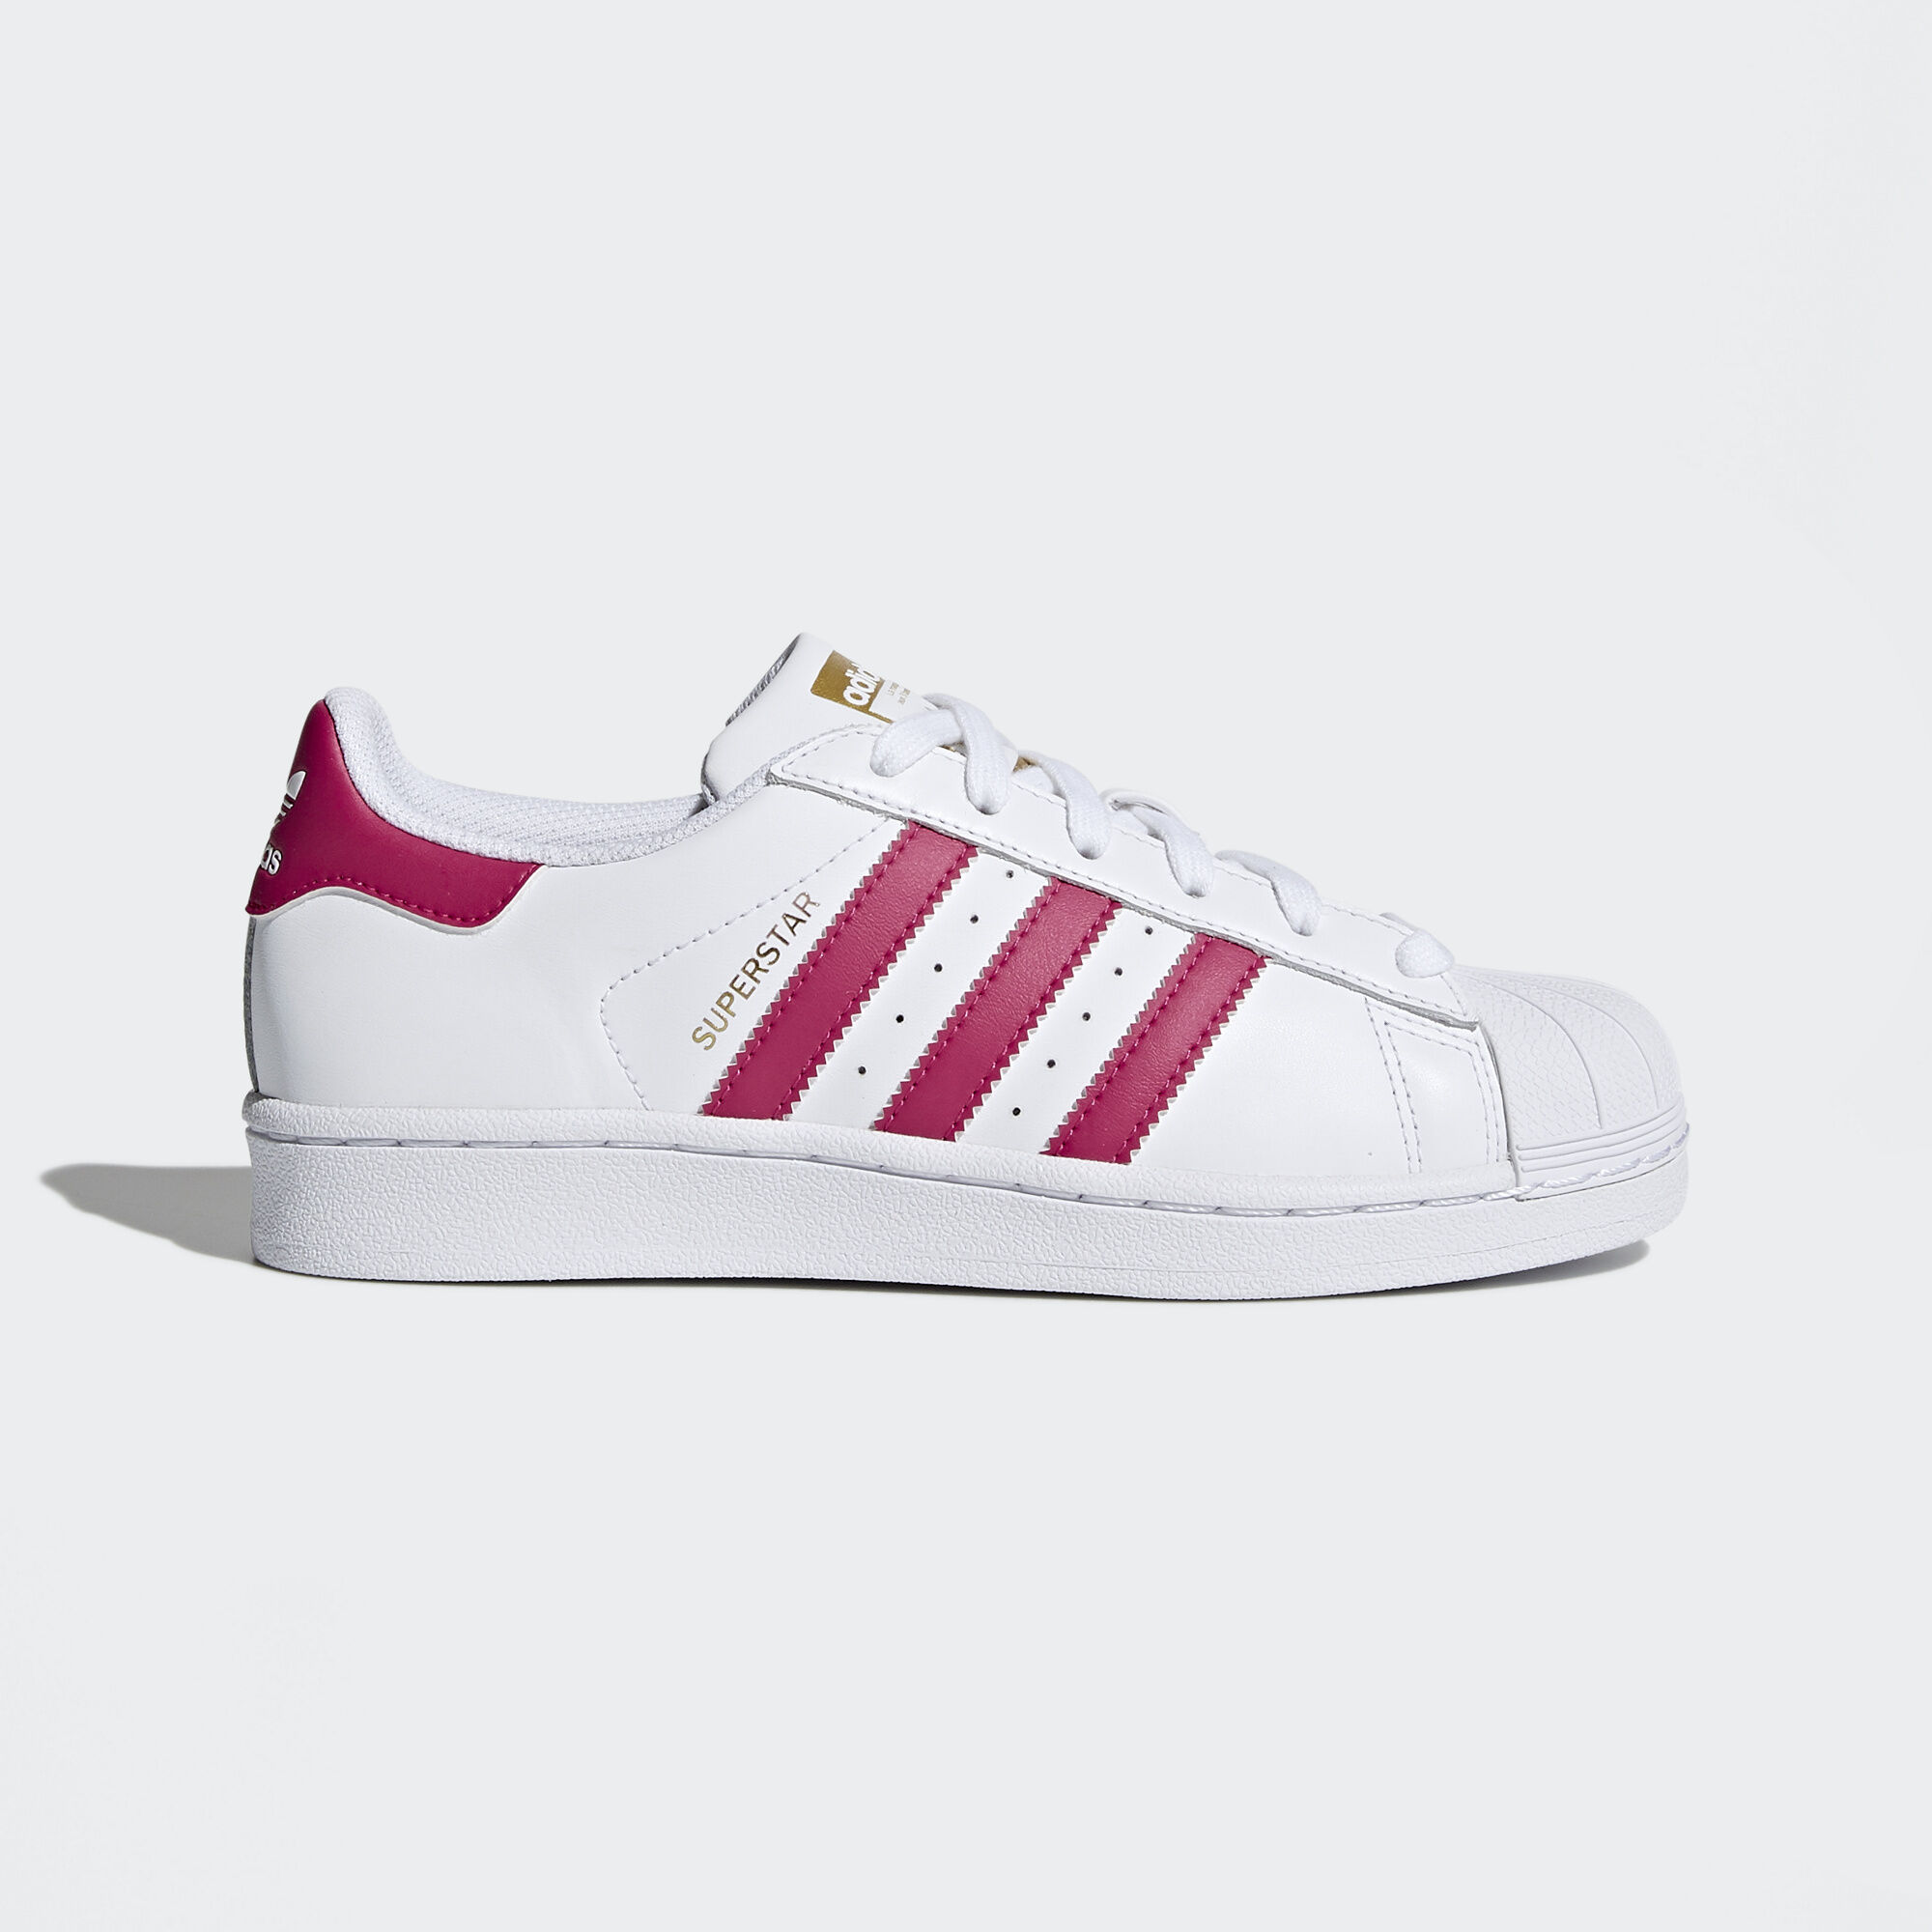 Adidas superstar 80s kids Pink on sale >off44%)